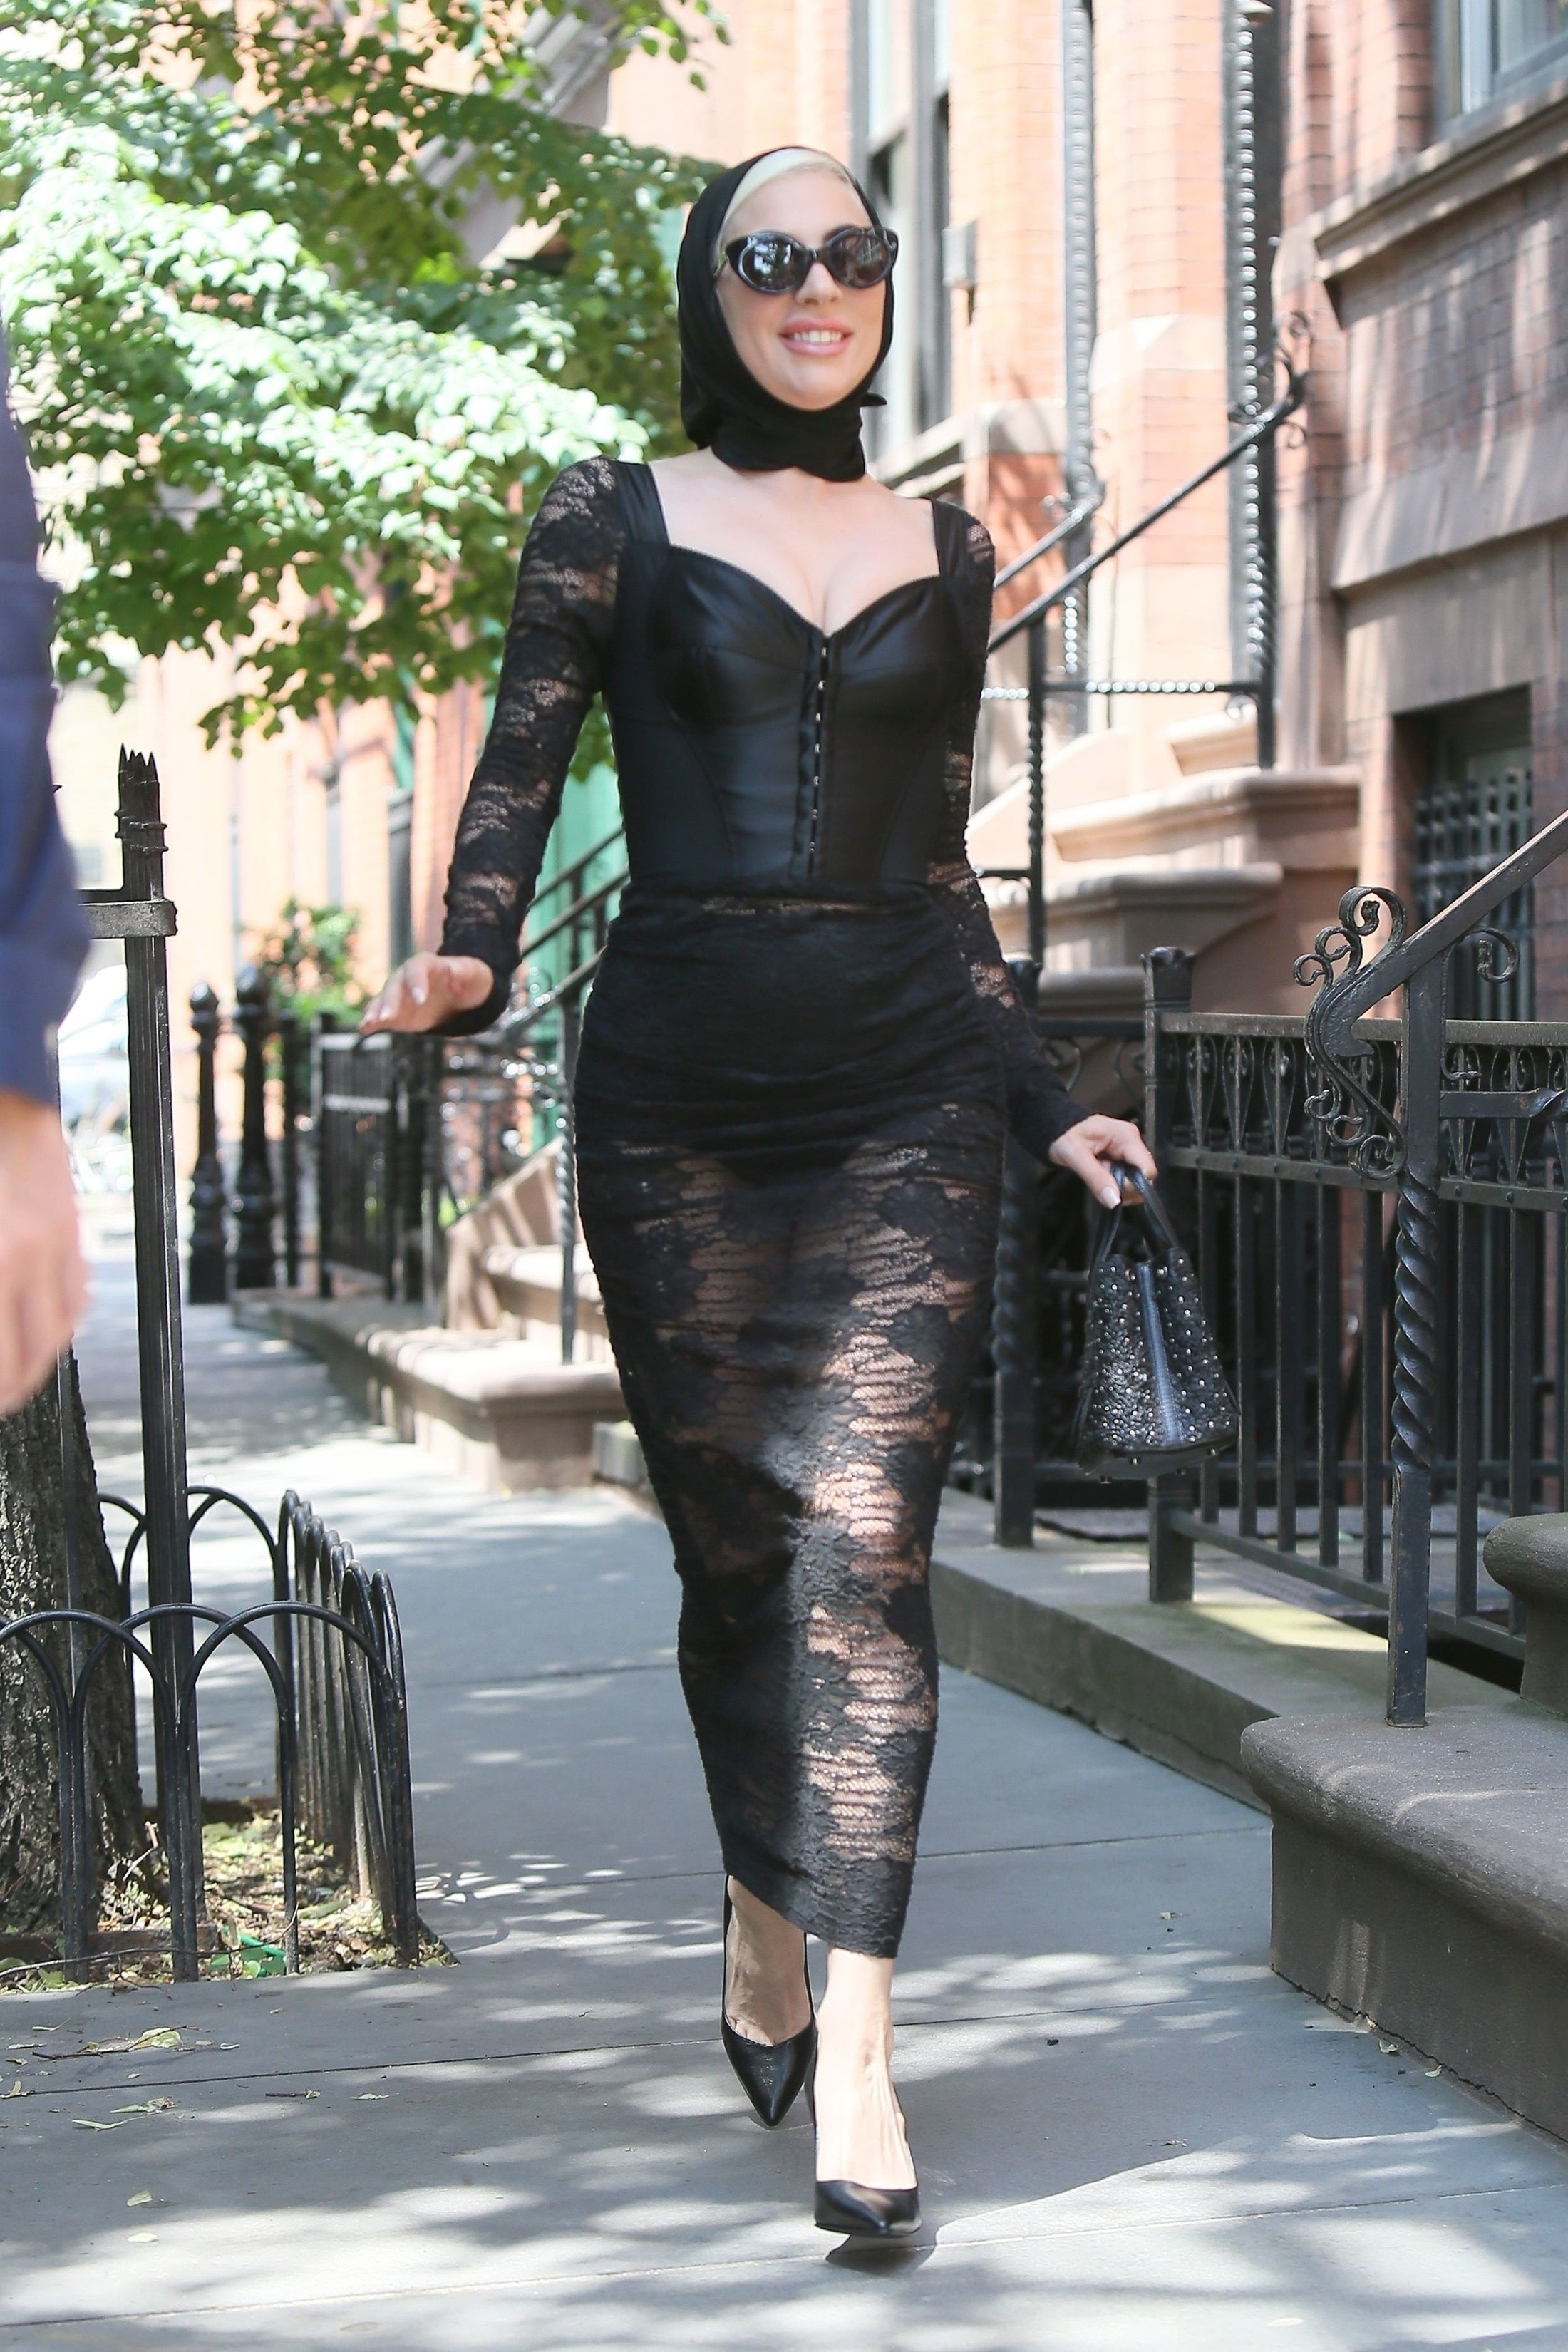 Lady Gaga Wearing Black Sheer Dress While Leaving Her House And Heading To Electric Lady Sound Studio In Lady Gaga News Lady Gaga Fashion Lady Gaga Pictures